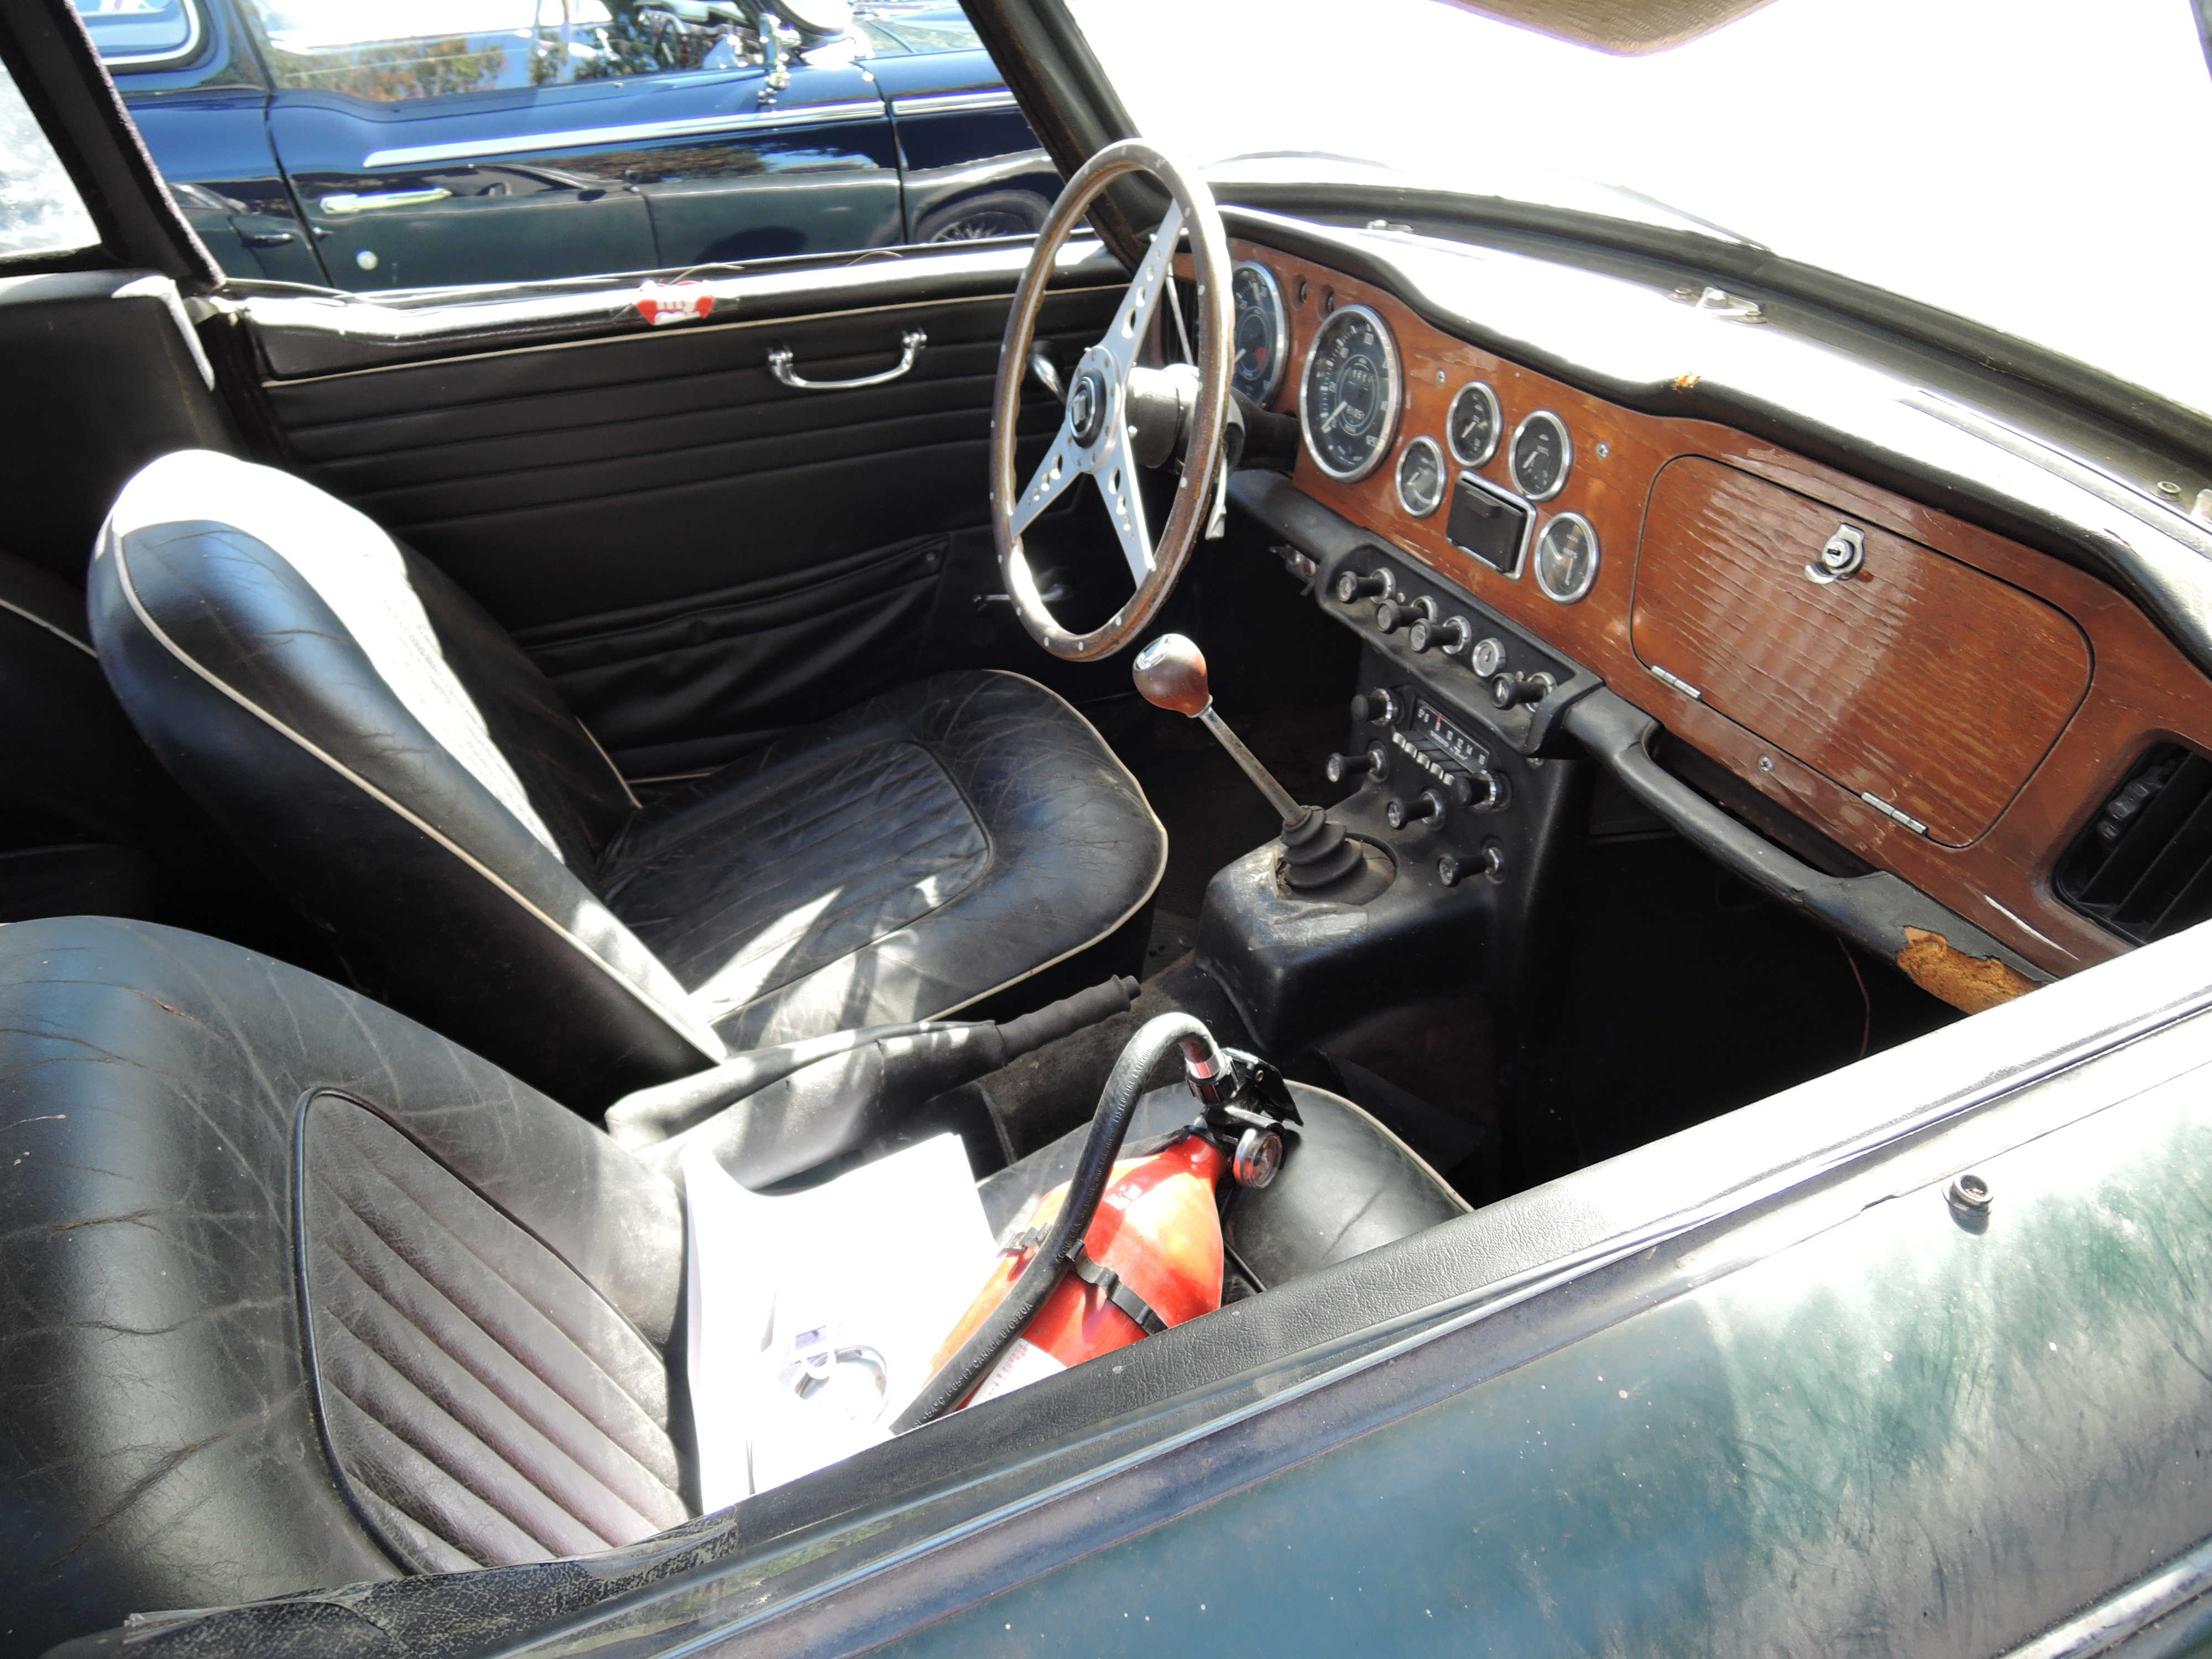 interior of 1966 Triumph TR4A Dove - The Boston Cup on Boston Common